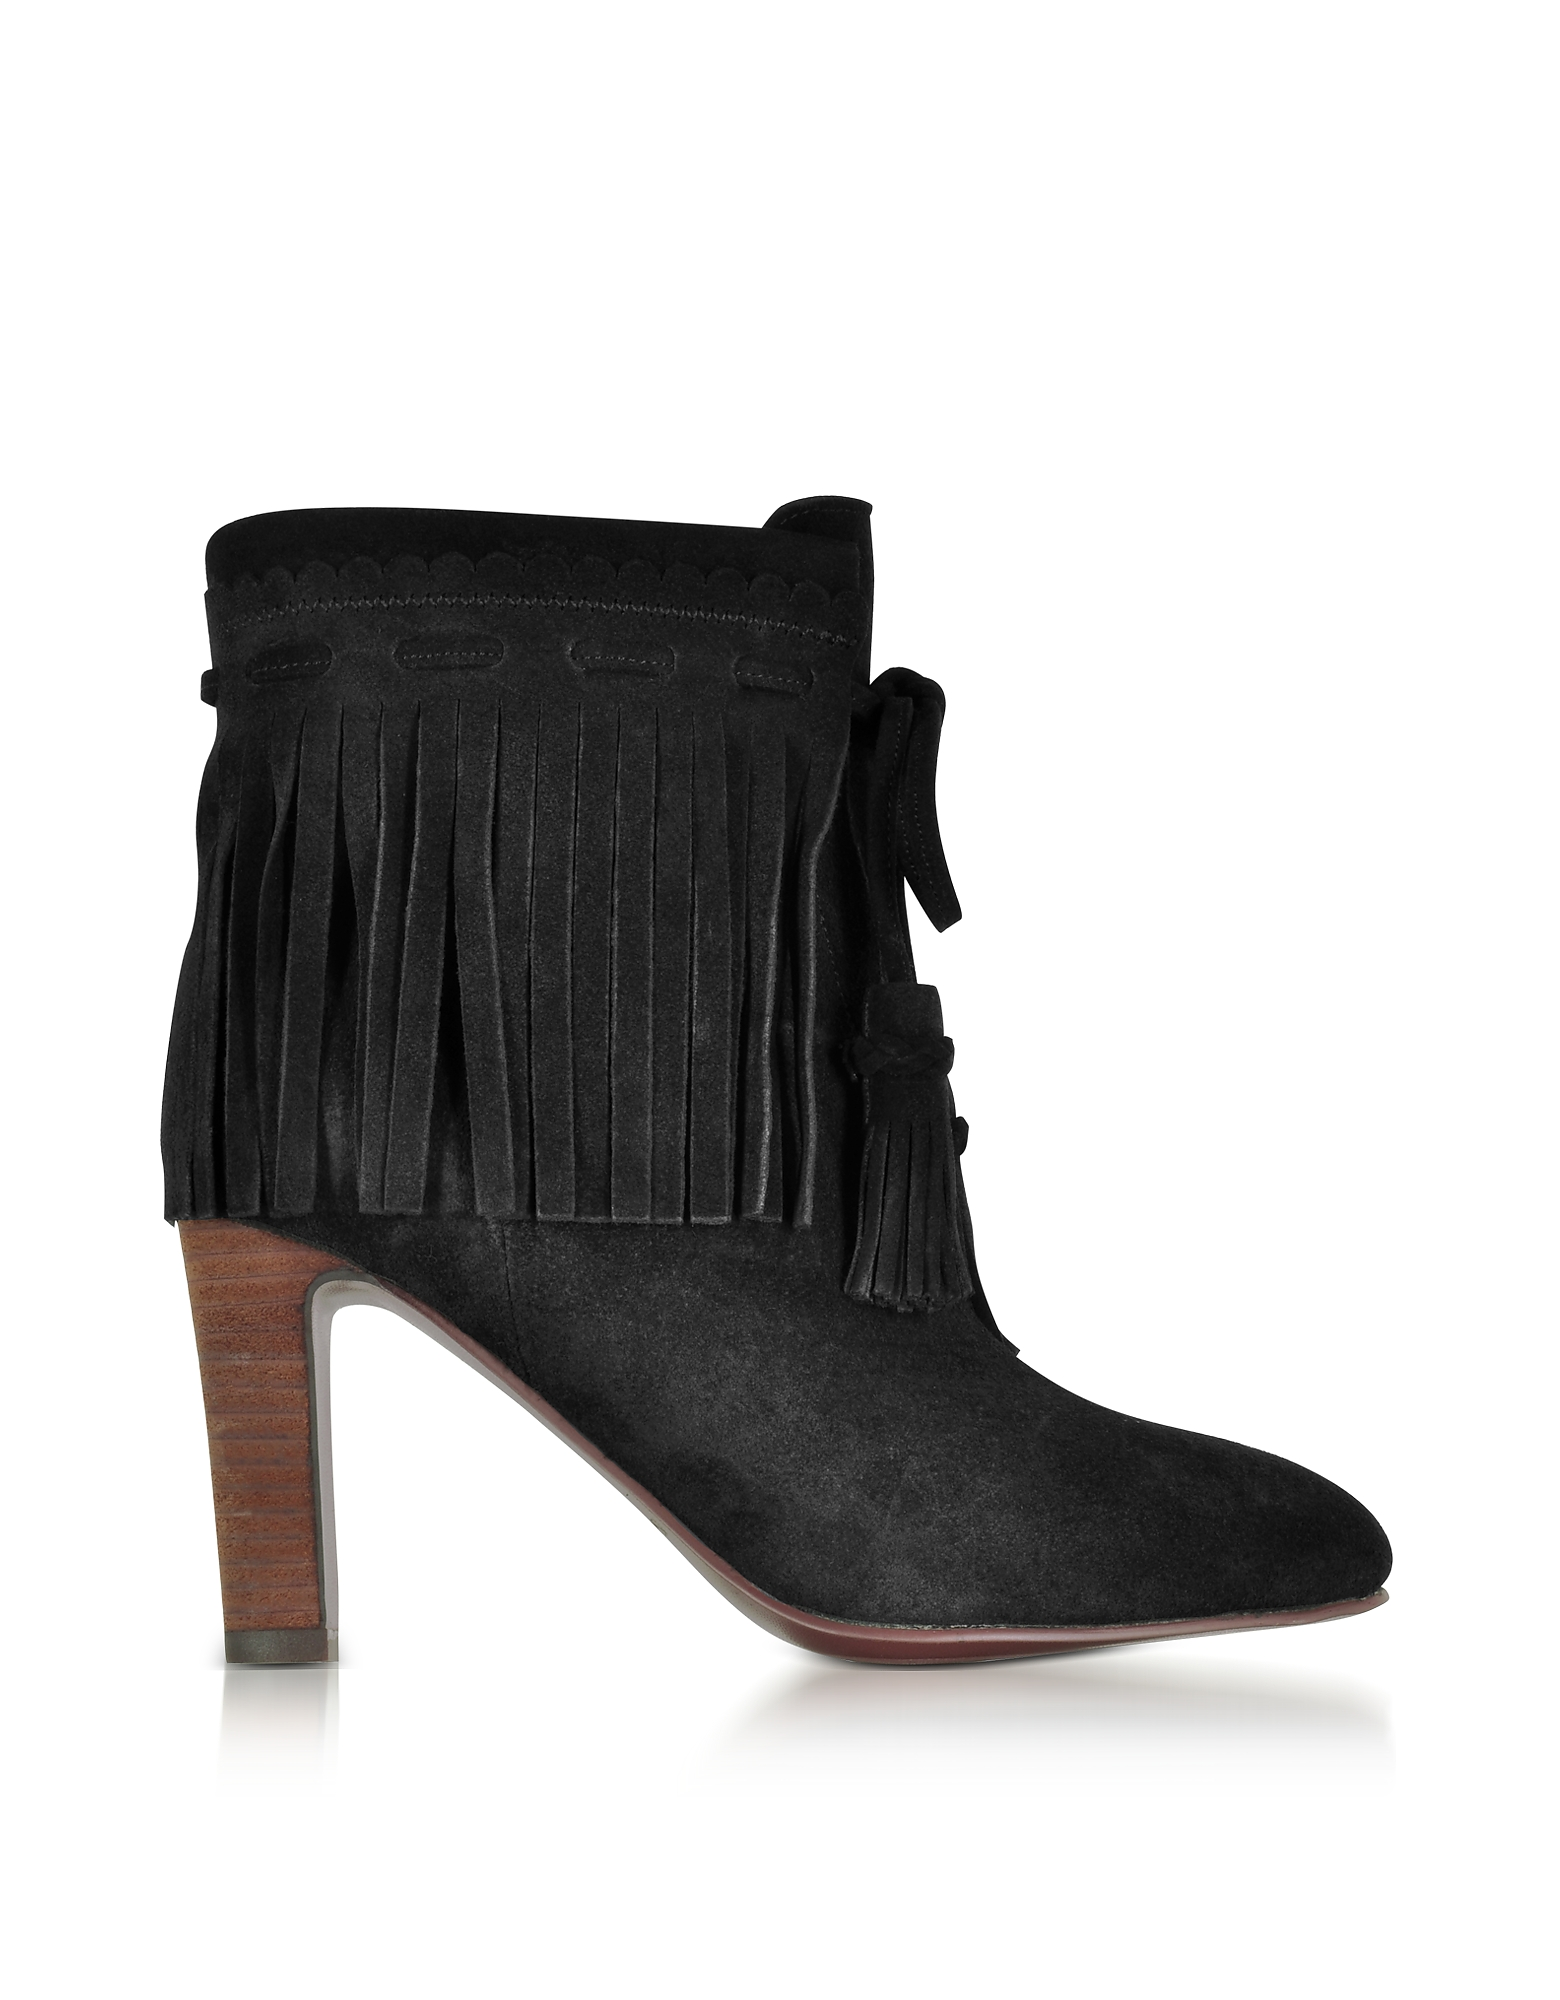 See by Chloé Shoes, Black Suede Fringed High Heels Booties